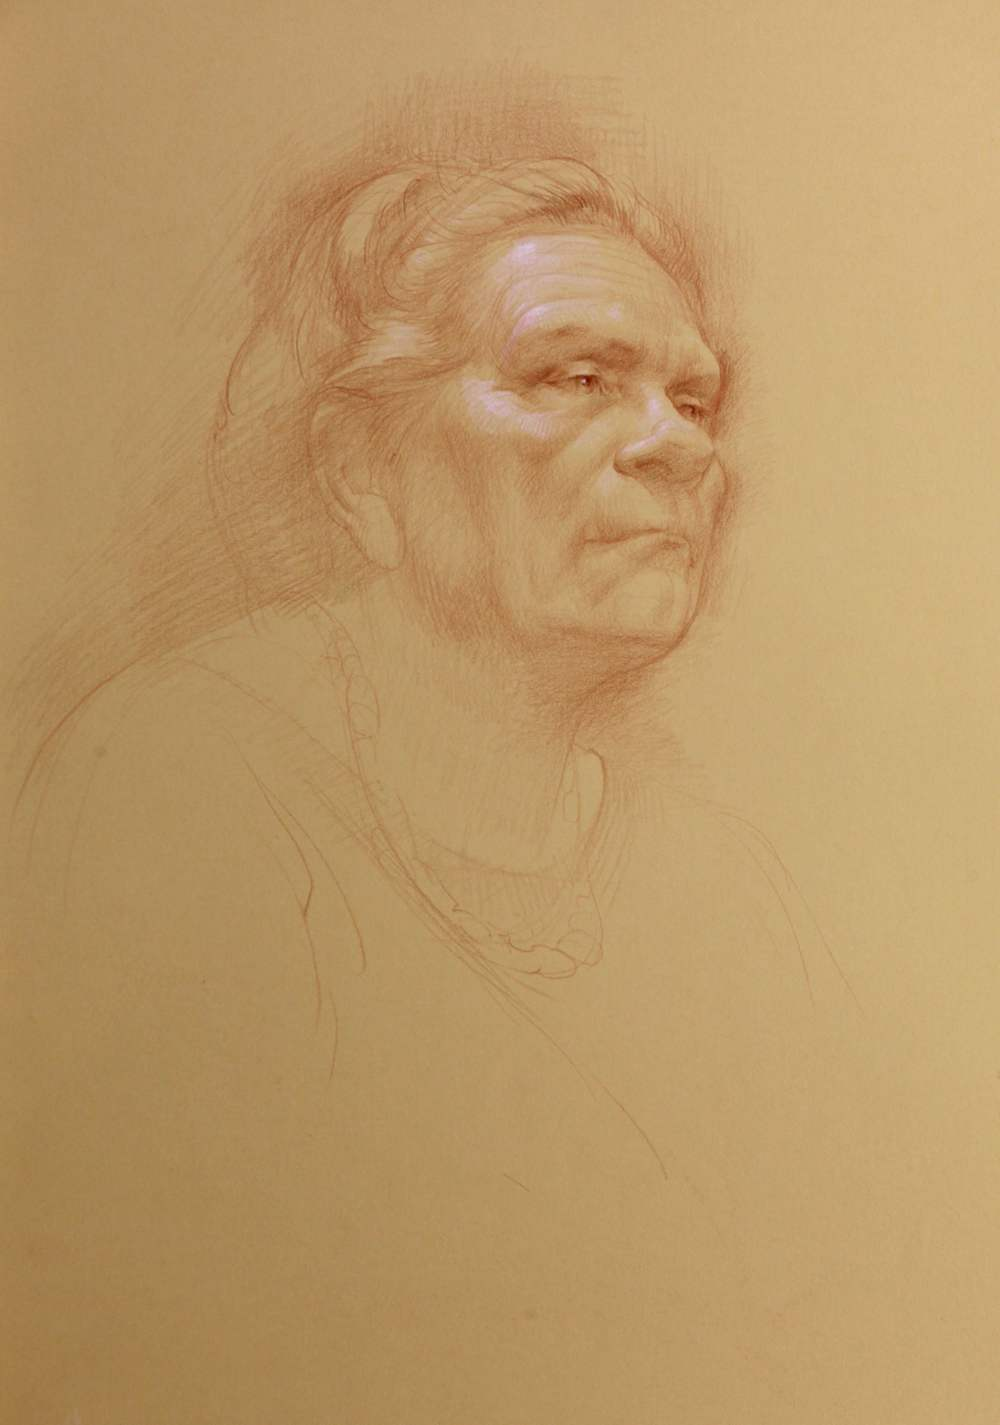 Scott+Breton+portrait+life+drawing+old+woman.jpg